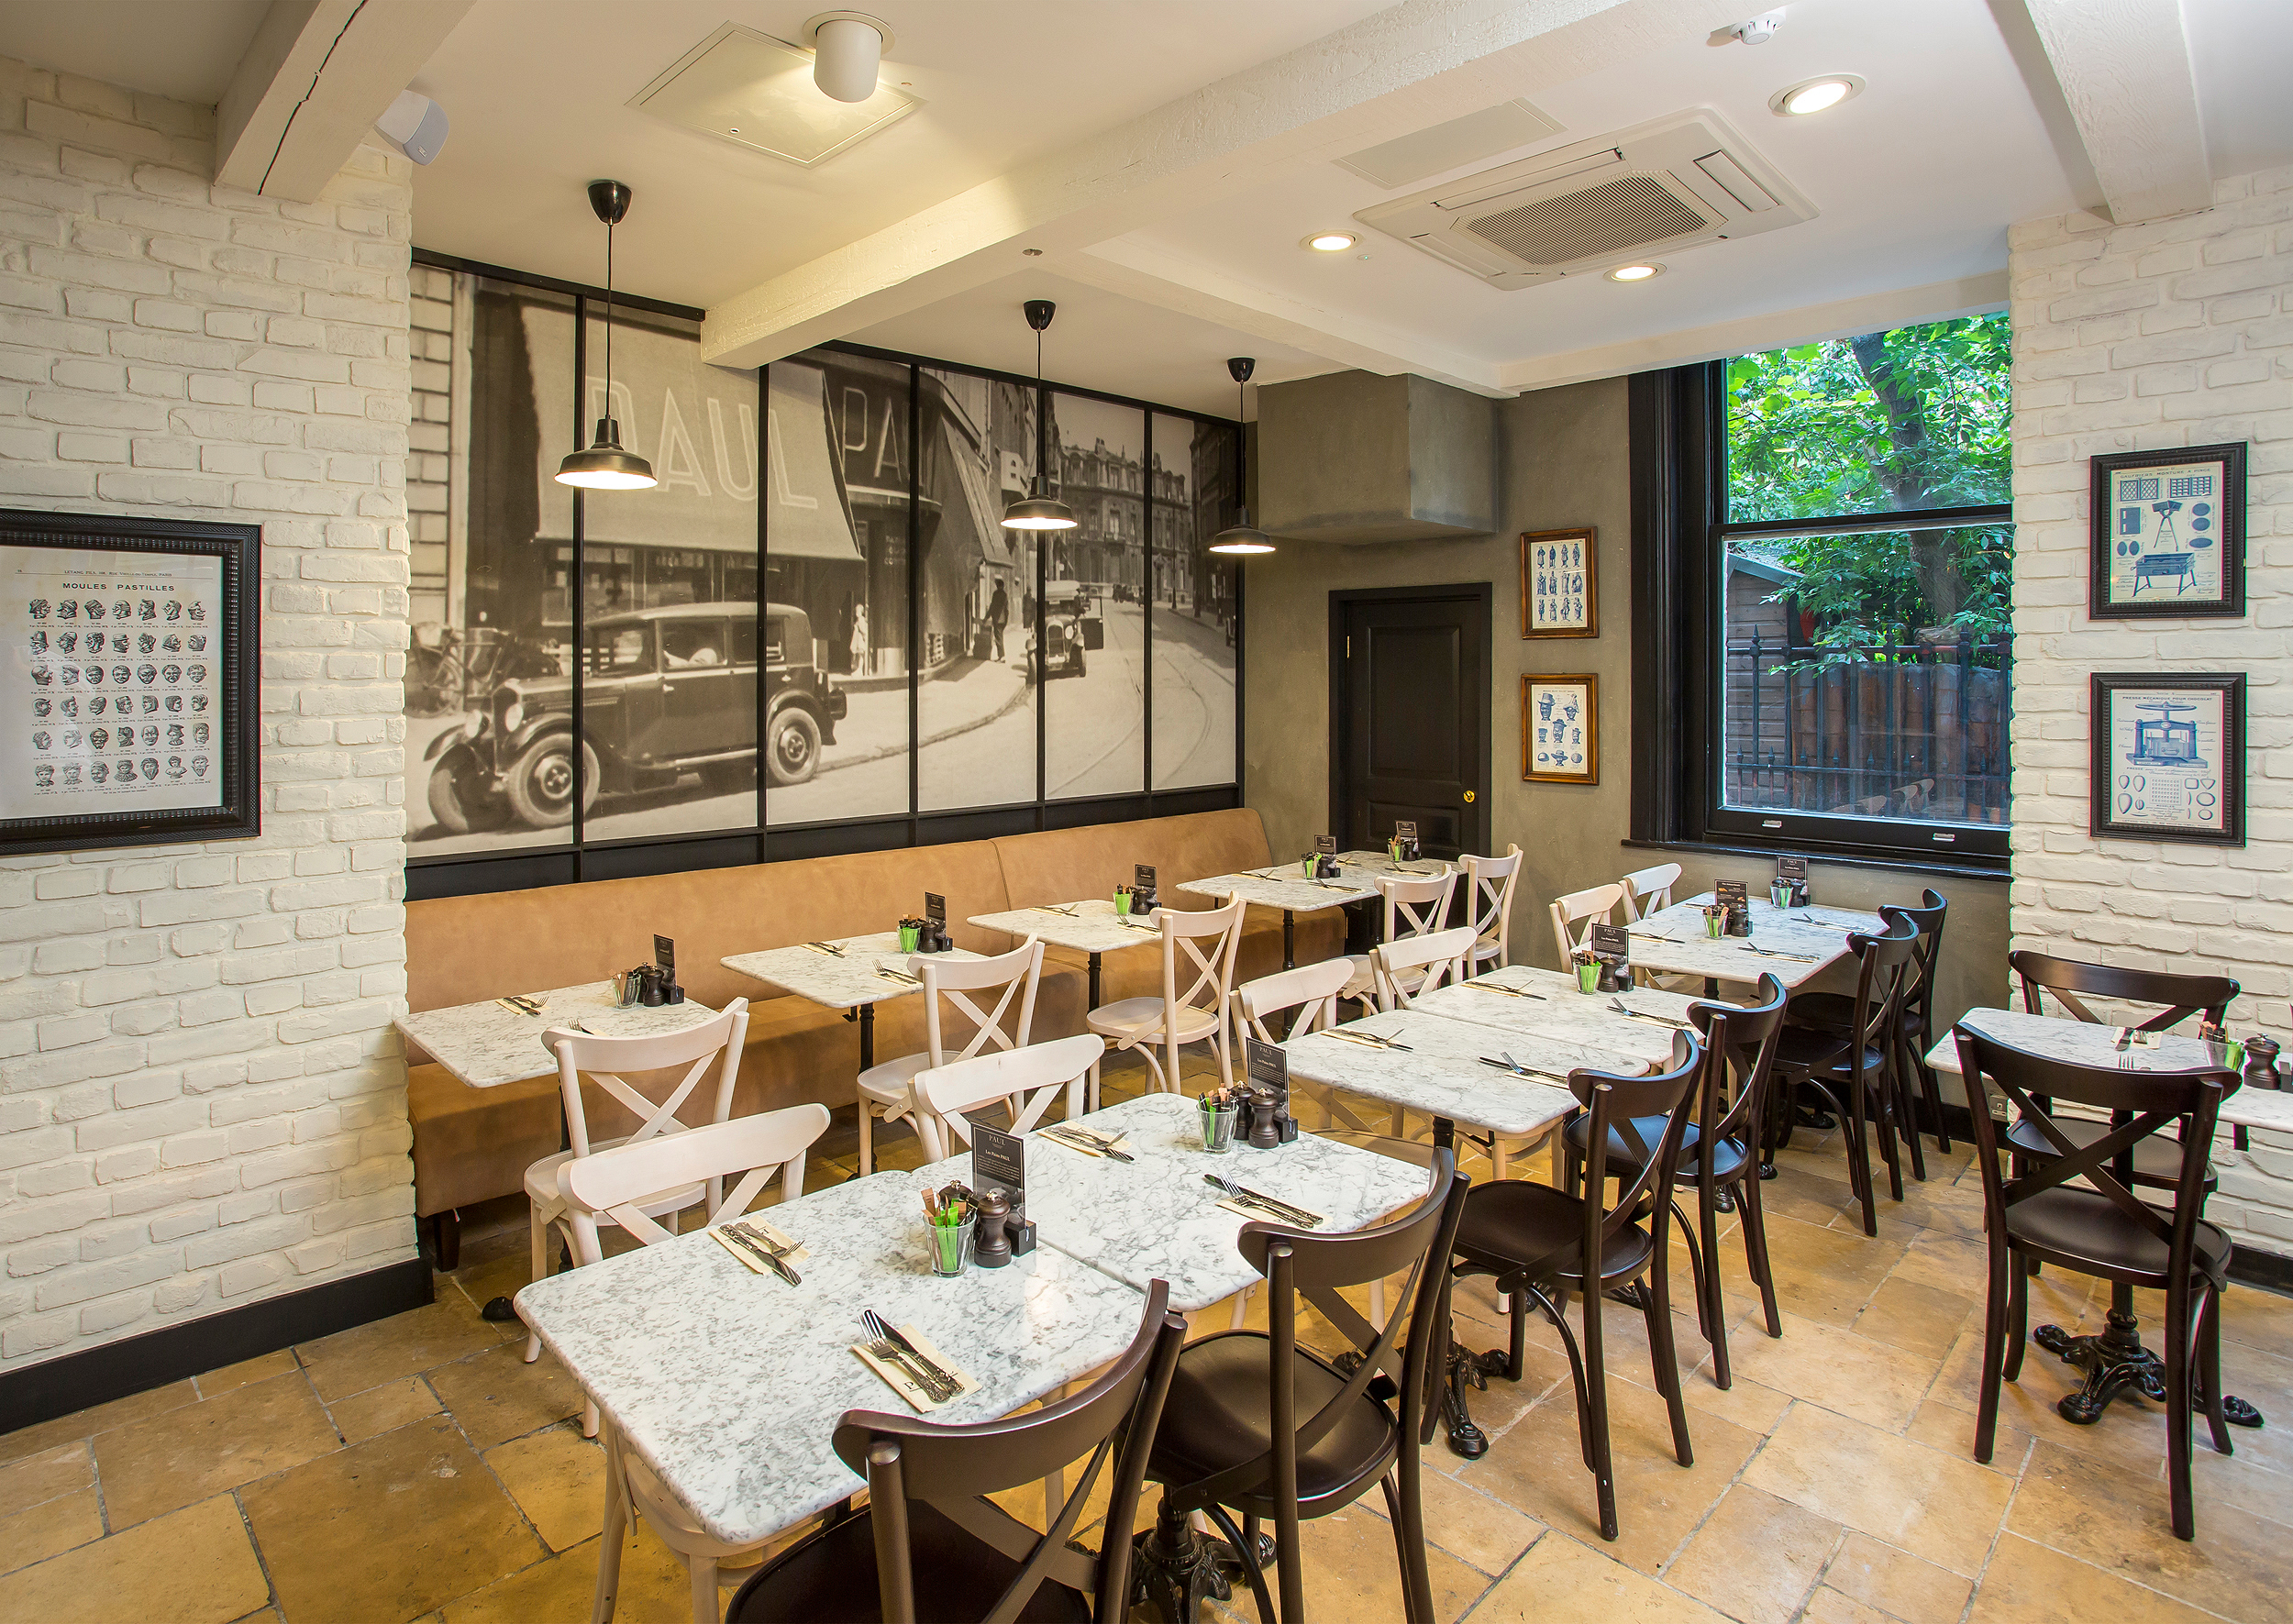 Le restaurant de paul london dining stagezine for Cafe de jardin in covent garden